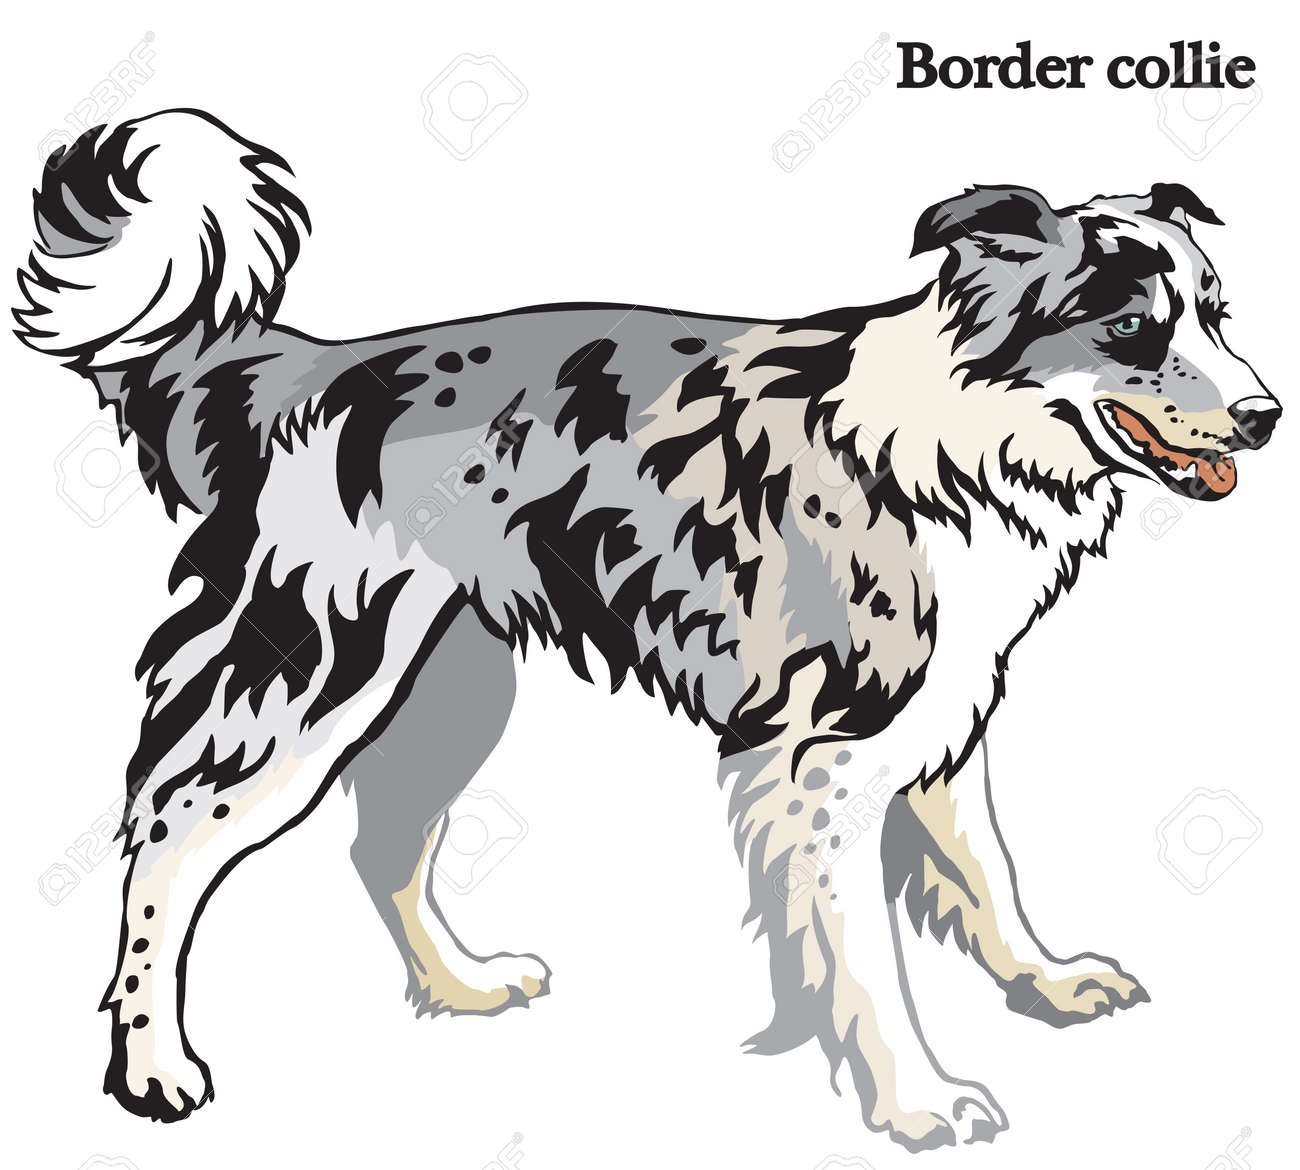 Portrait Of Standing In Profile Dog Border Collie Blue Merle